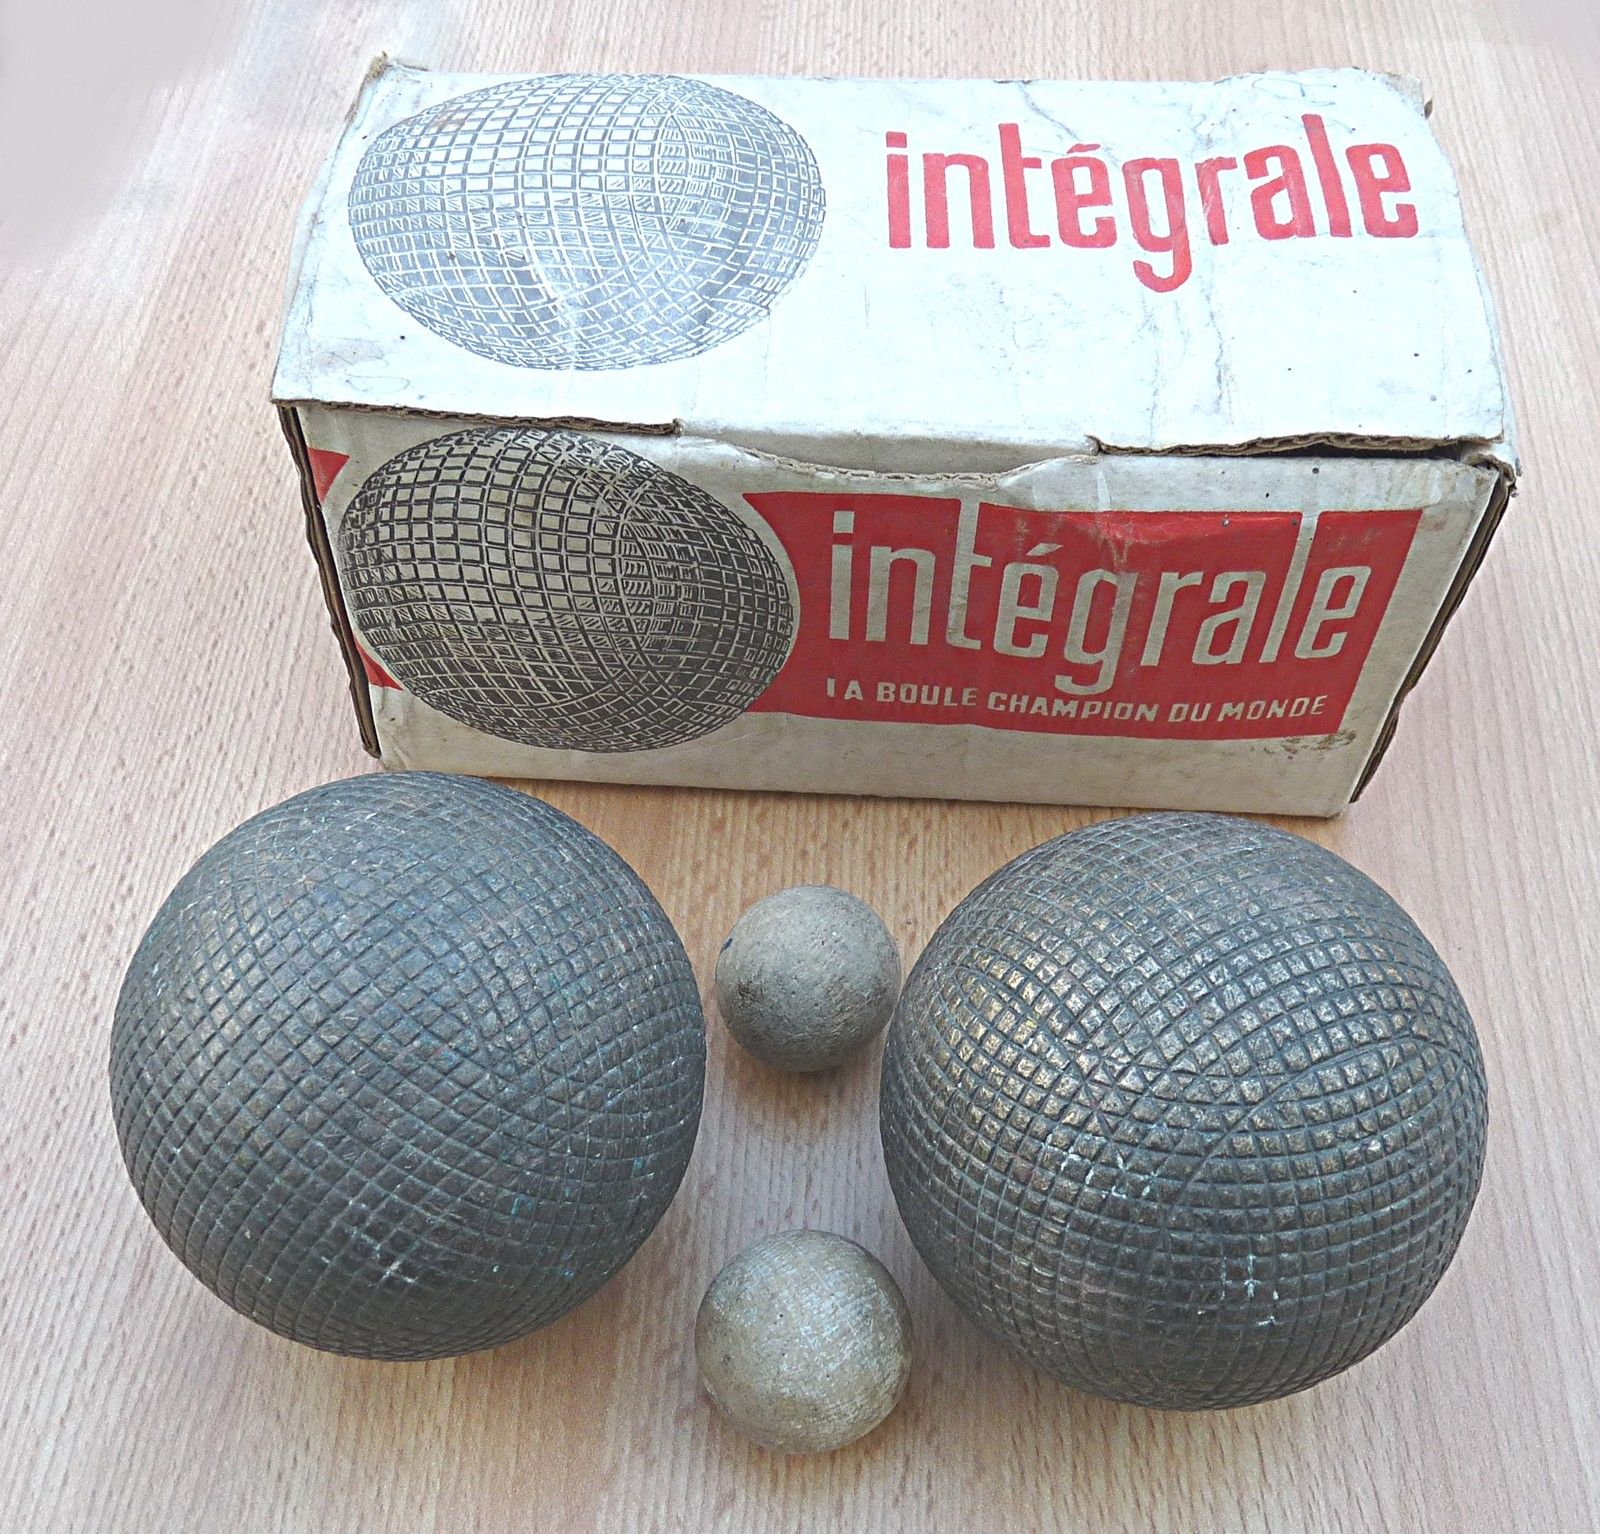 La boule int grale and the rise of petanque all about for Boule deboule le jeu